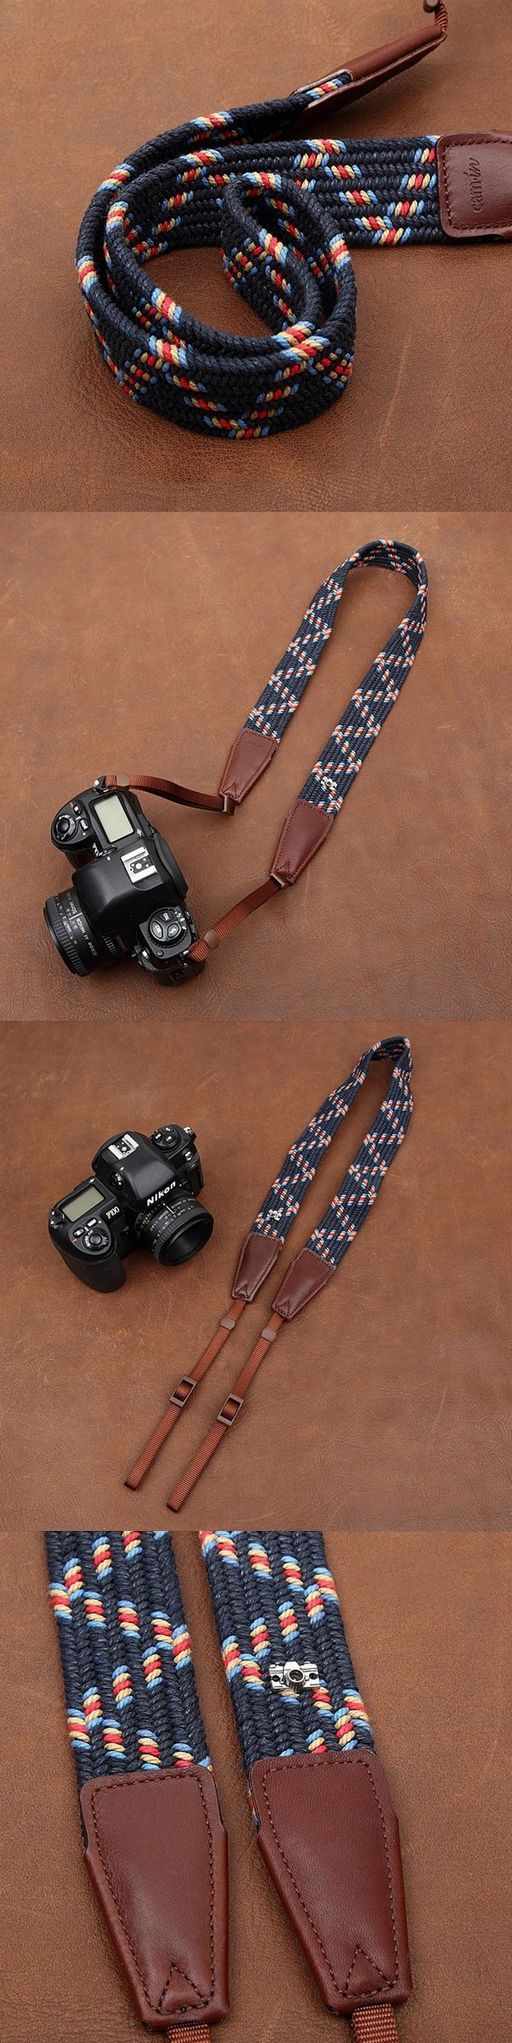 Weaving Style Dslr Deep Blue Sony Nikon Canon Handmade Leather Denim Strap Kamera Mirrorless Dlsr Slr Fujifilm Camera 8792 By I